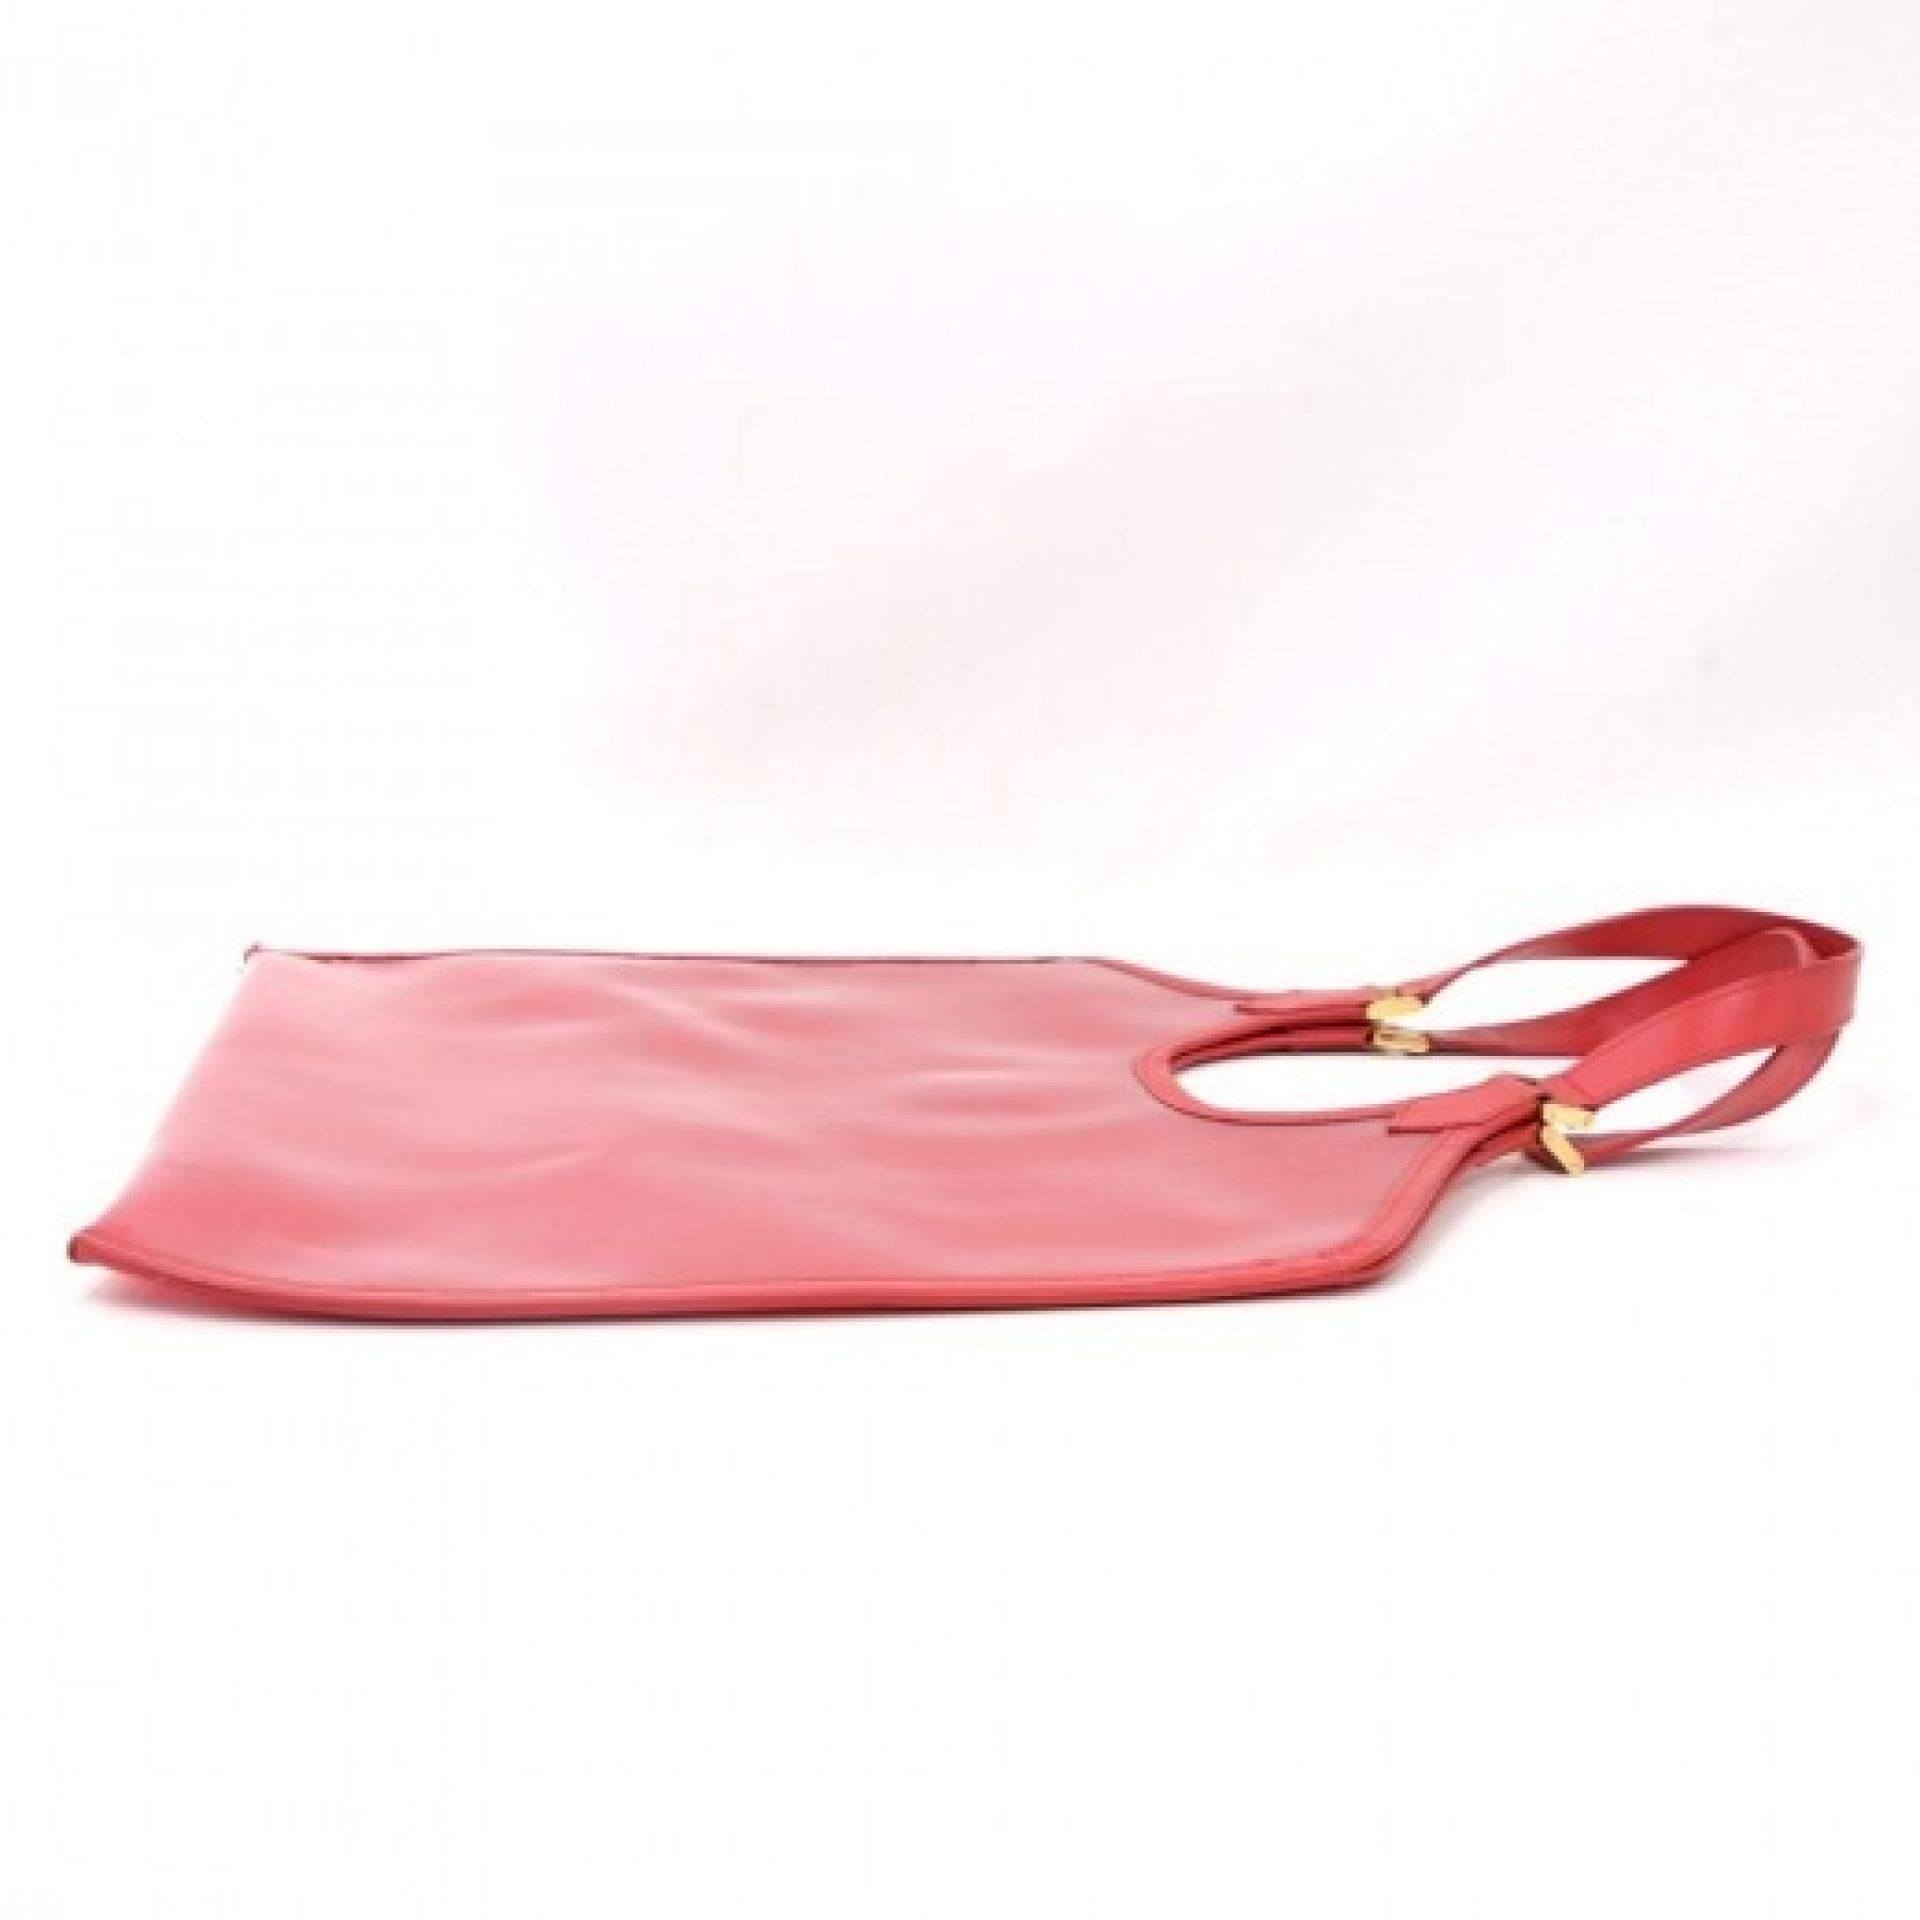 Louis Vuitton Plage Lagoon GM Red Vinyl Beach Bag + Pouch